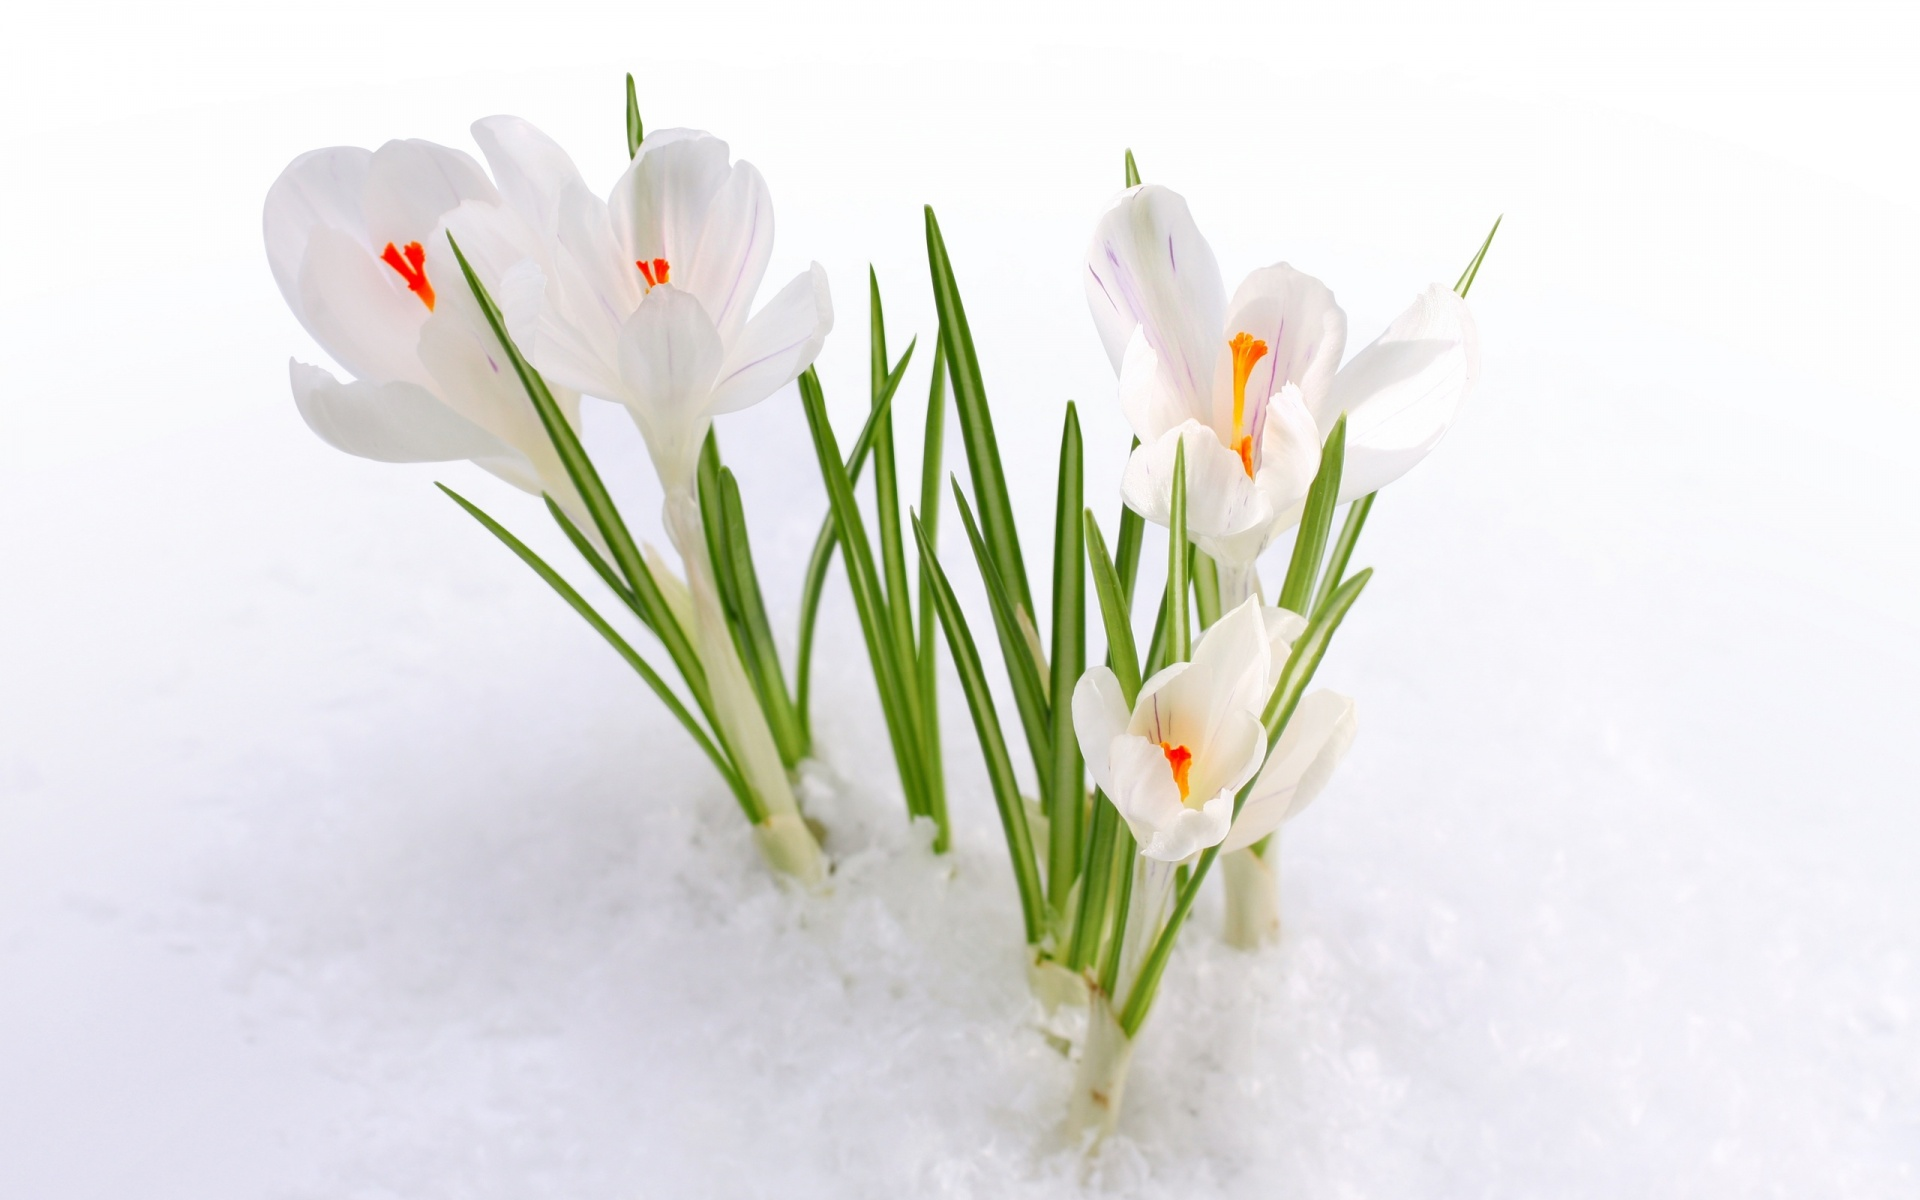 Description: The Wallpaper above is White Crocus Snow Wallpaper in Resolution 1920x1200. Choose your Resolution and Download White Crocus Snow Wallpaper